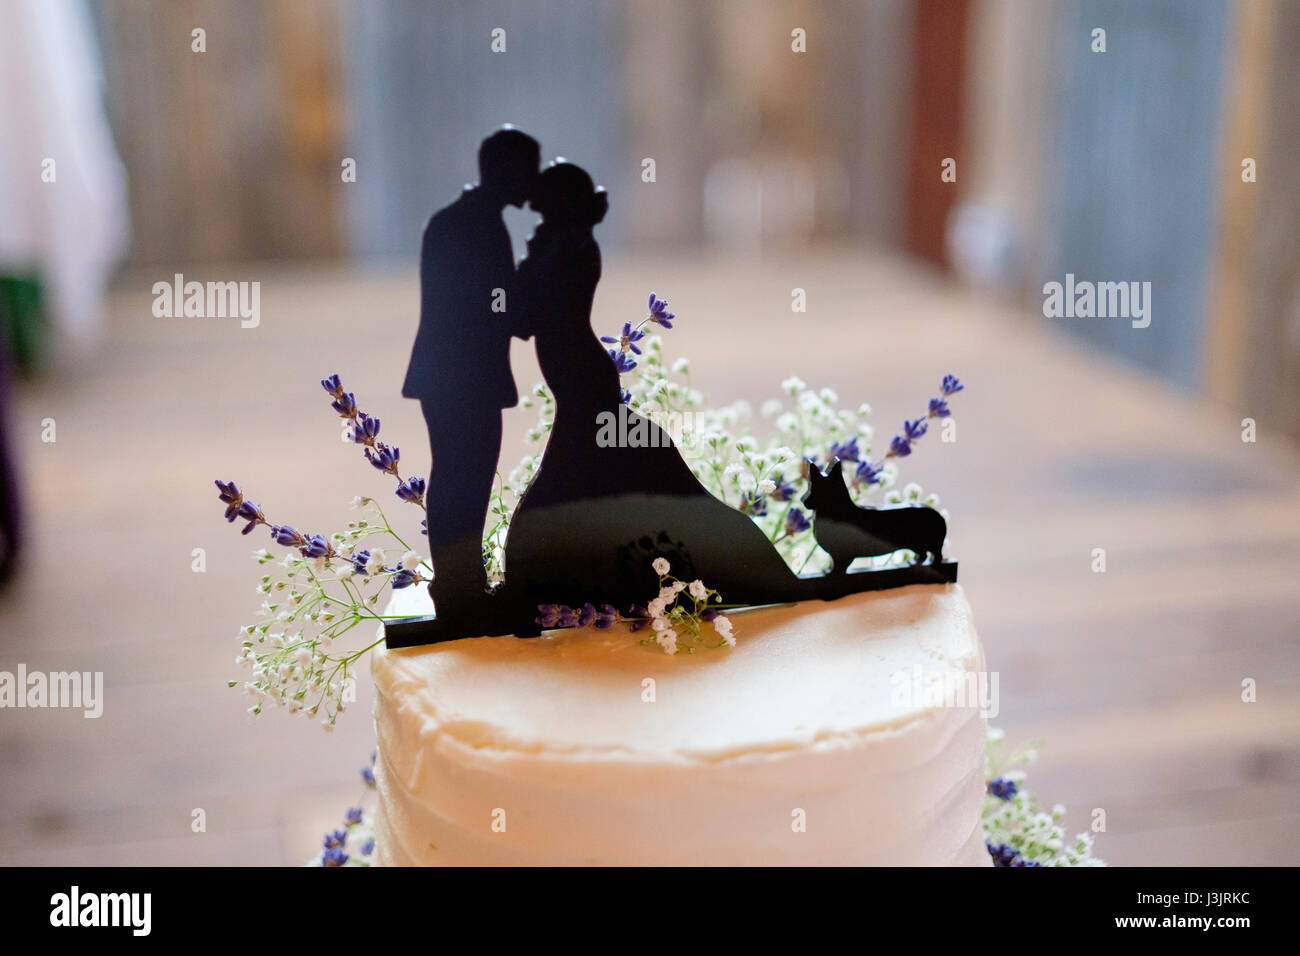 Wedding Cake Topper In Chinese Translation